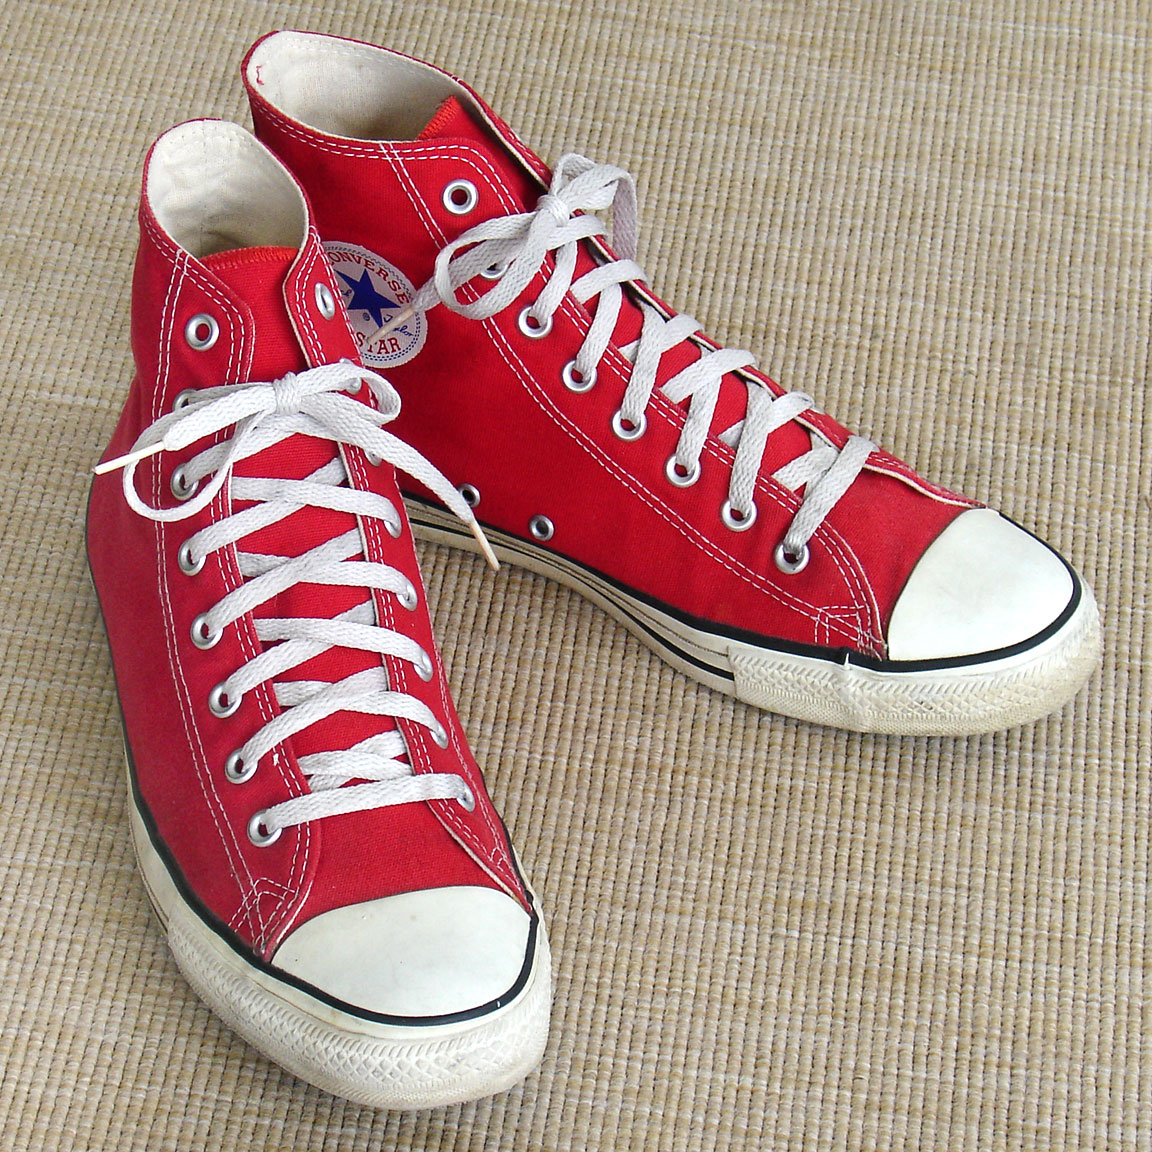 050ff689274d Vintage red hi-top American-made Converse All Star Chuck Taylor shoes for  sale